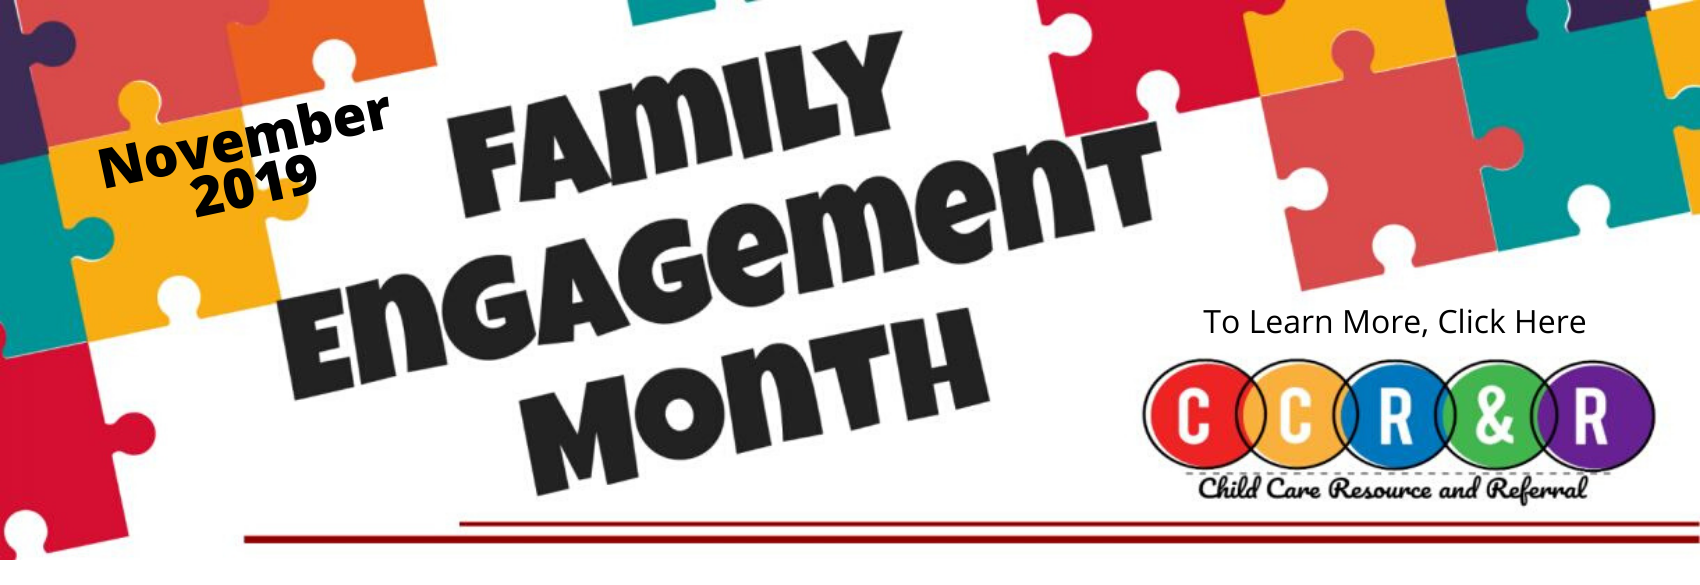 2019 Family Engagement Month